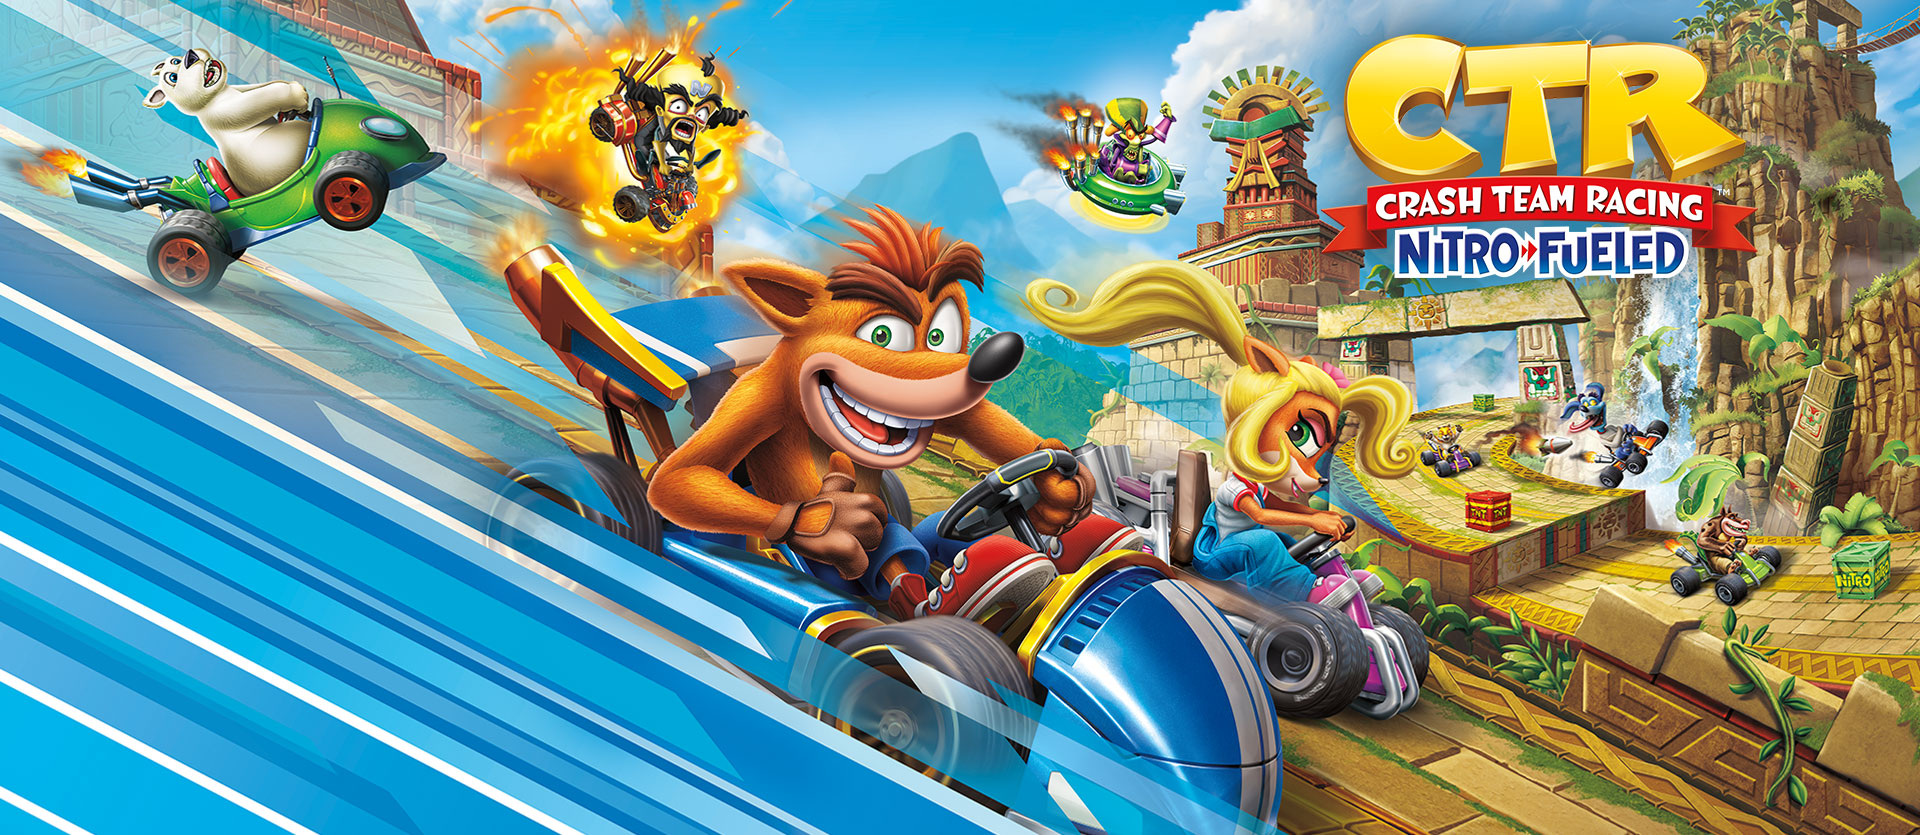 CTR Crash Team Racing Nitro Fueled, Crash Bandicoot og andre karakterer i køretøjer på junglebane